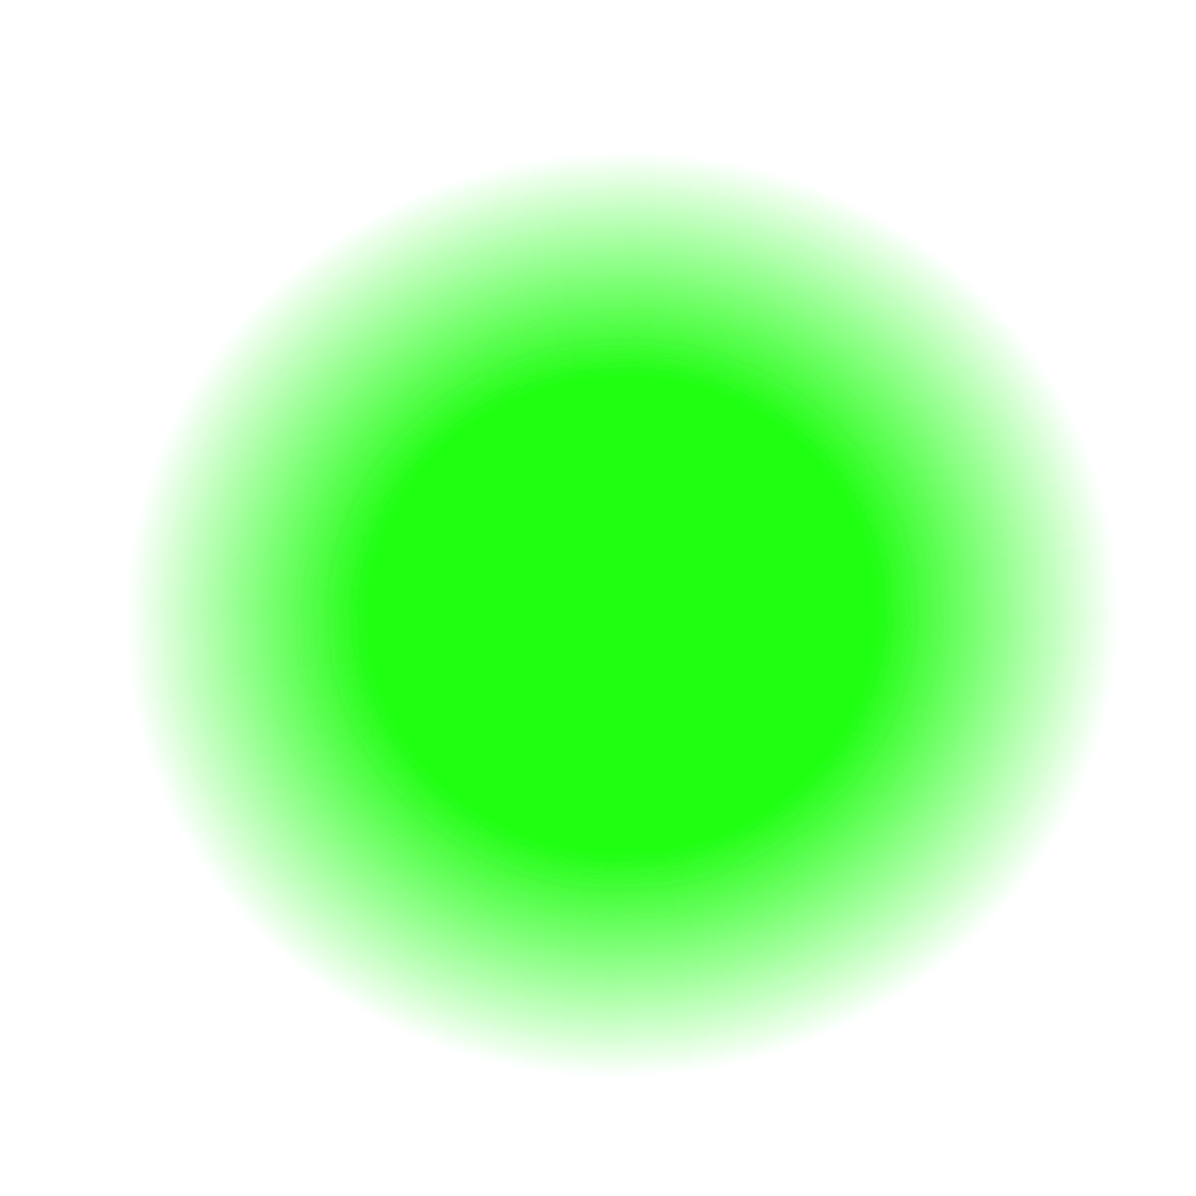 Circle glow png. All new colour point